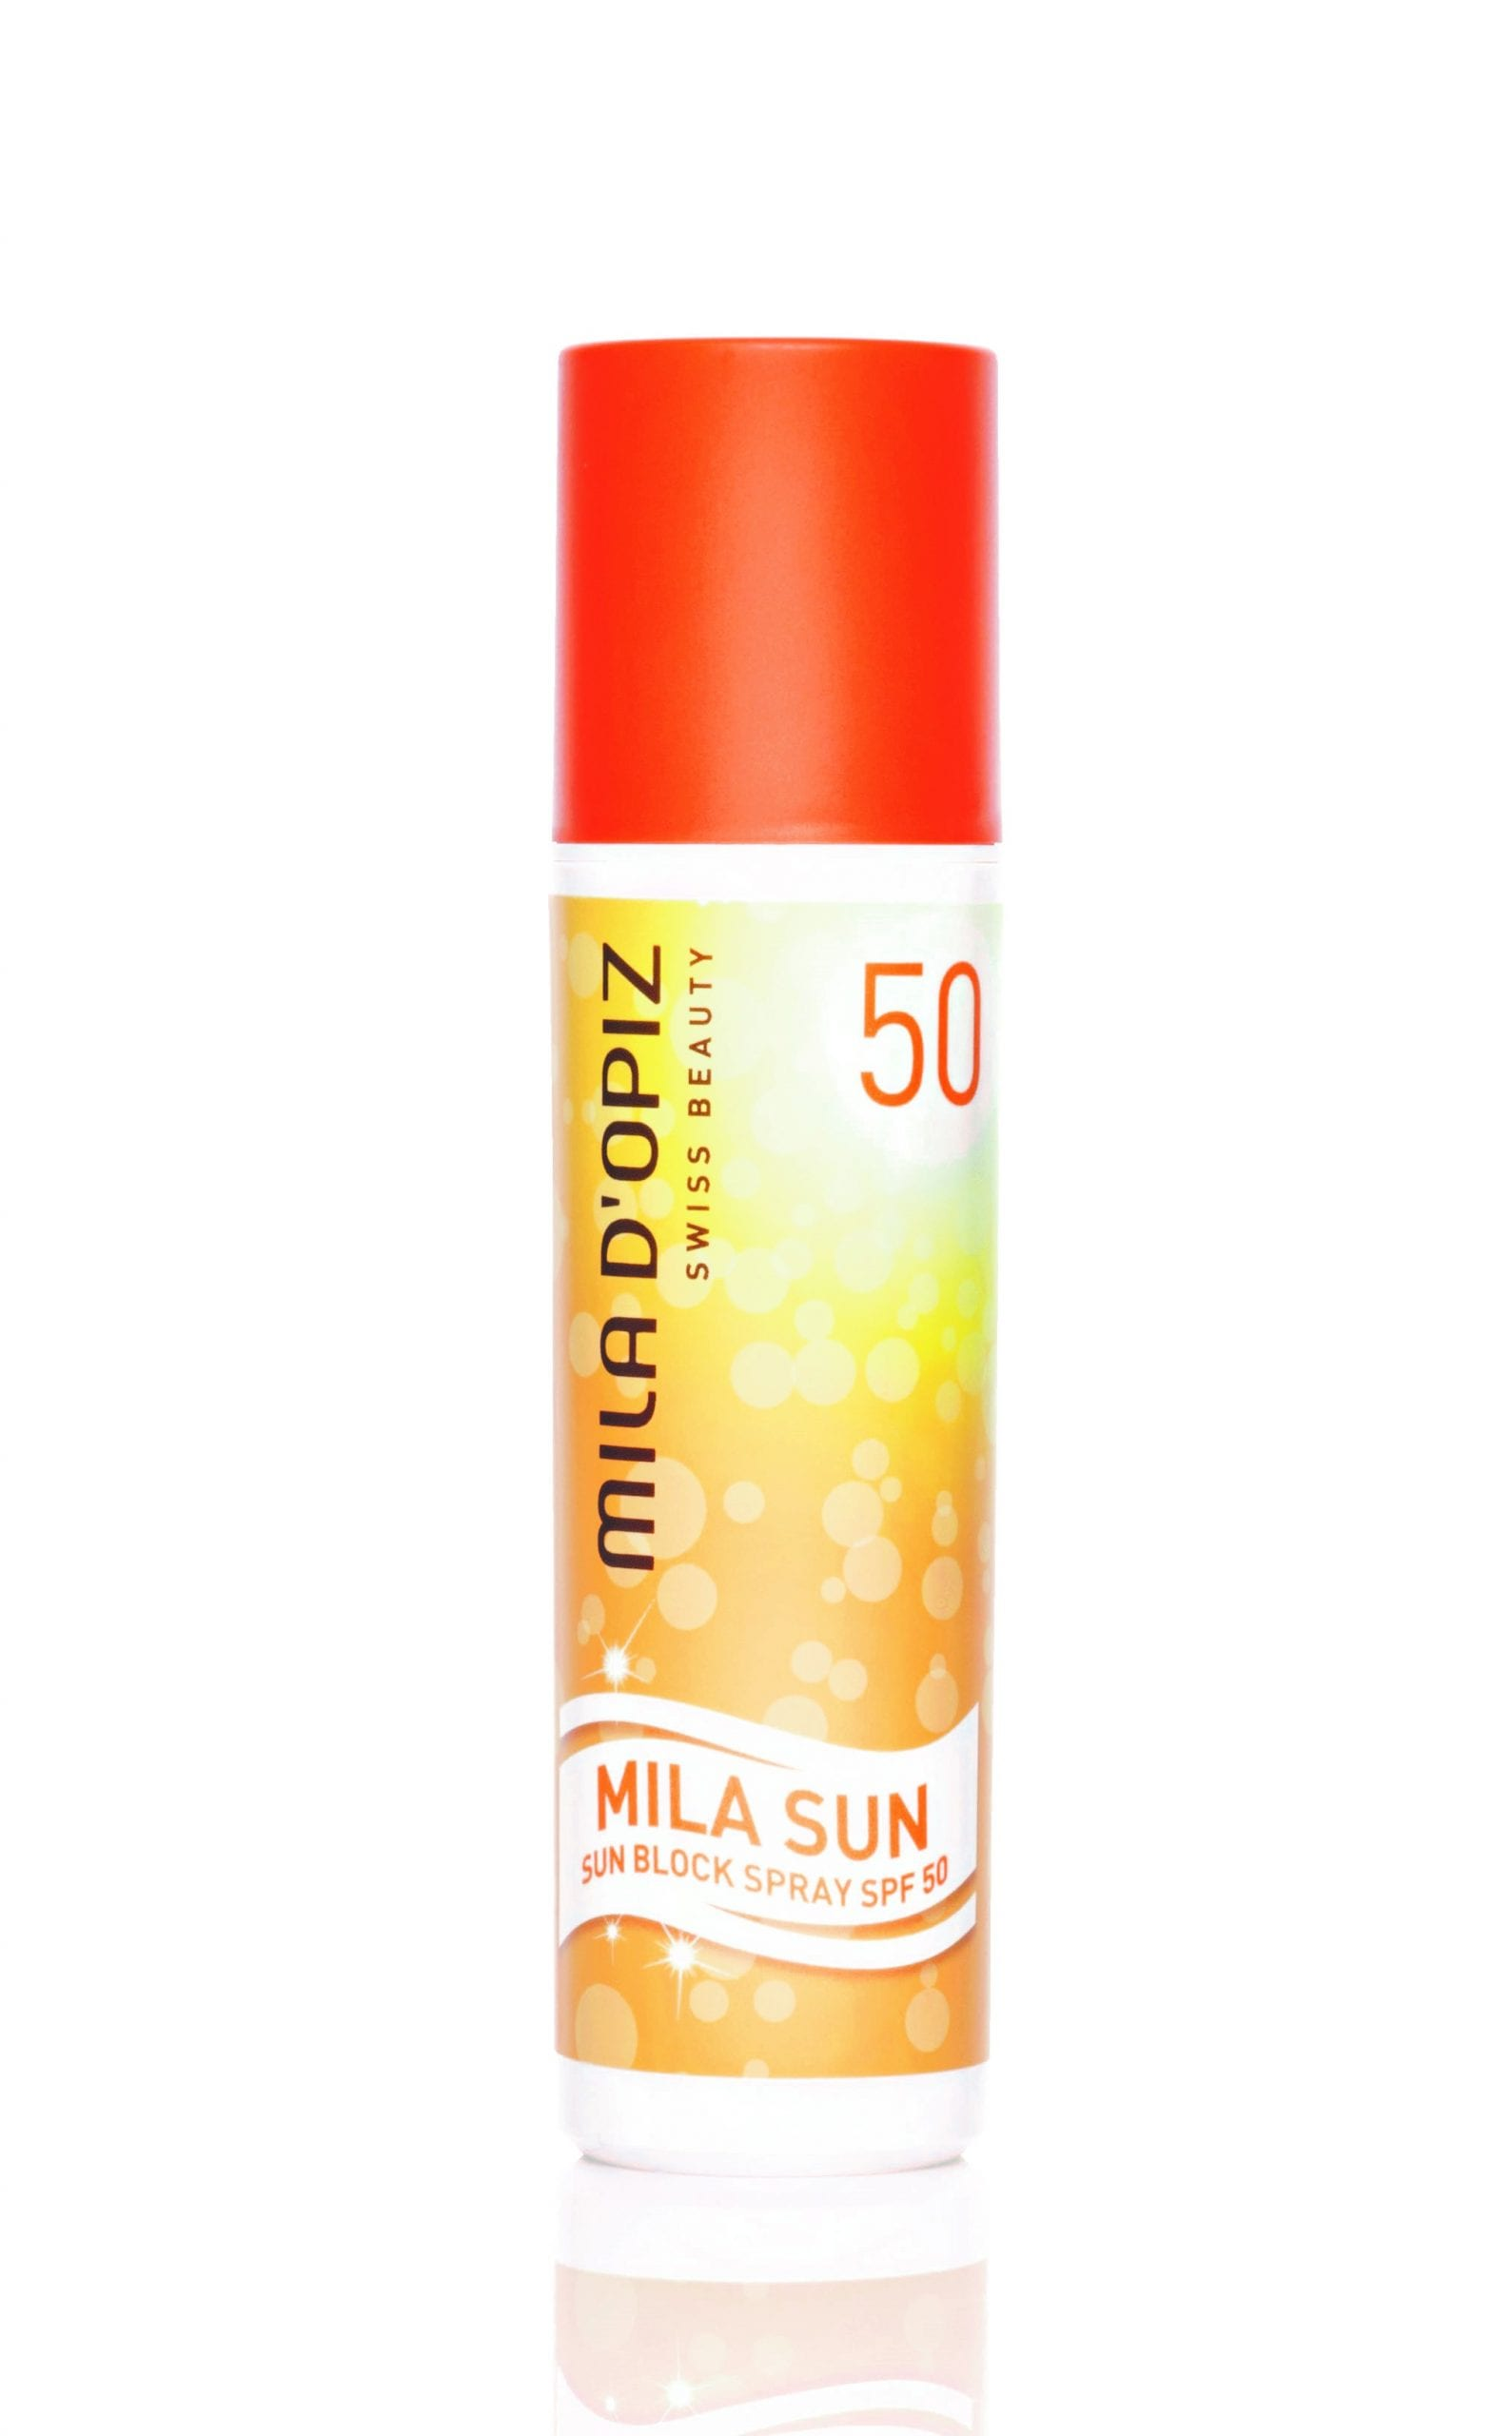 MilaSun_101466_Sun_Block_Spray_SPF_50_300DPI.jpg